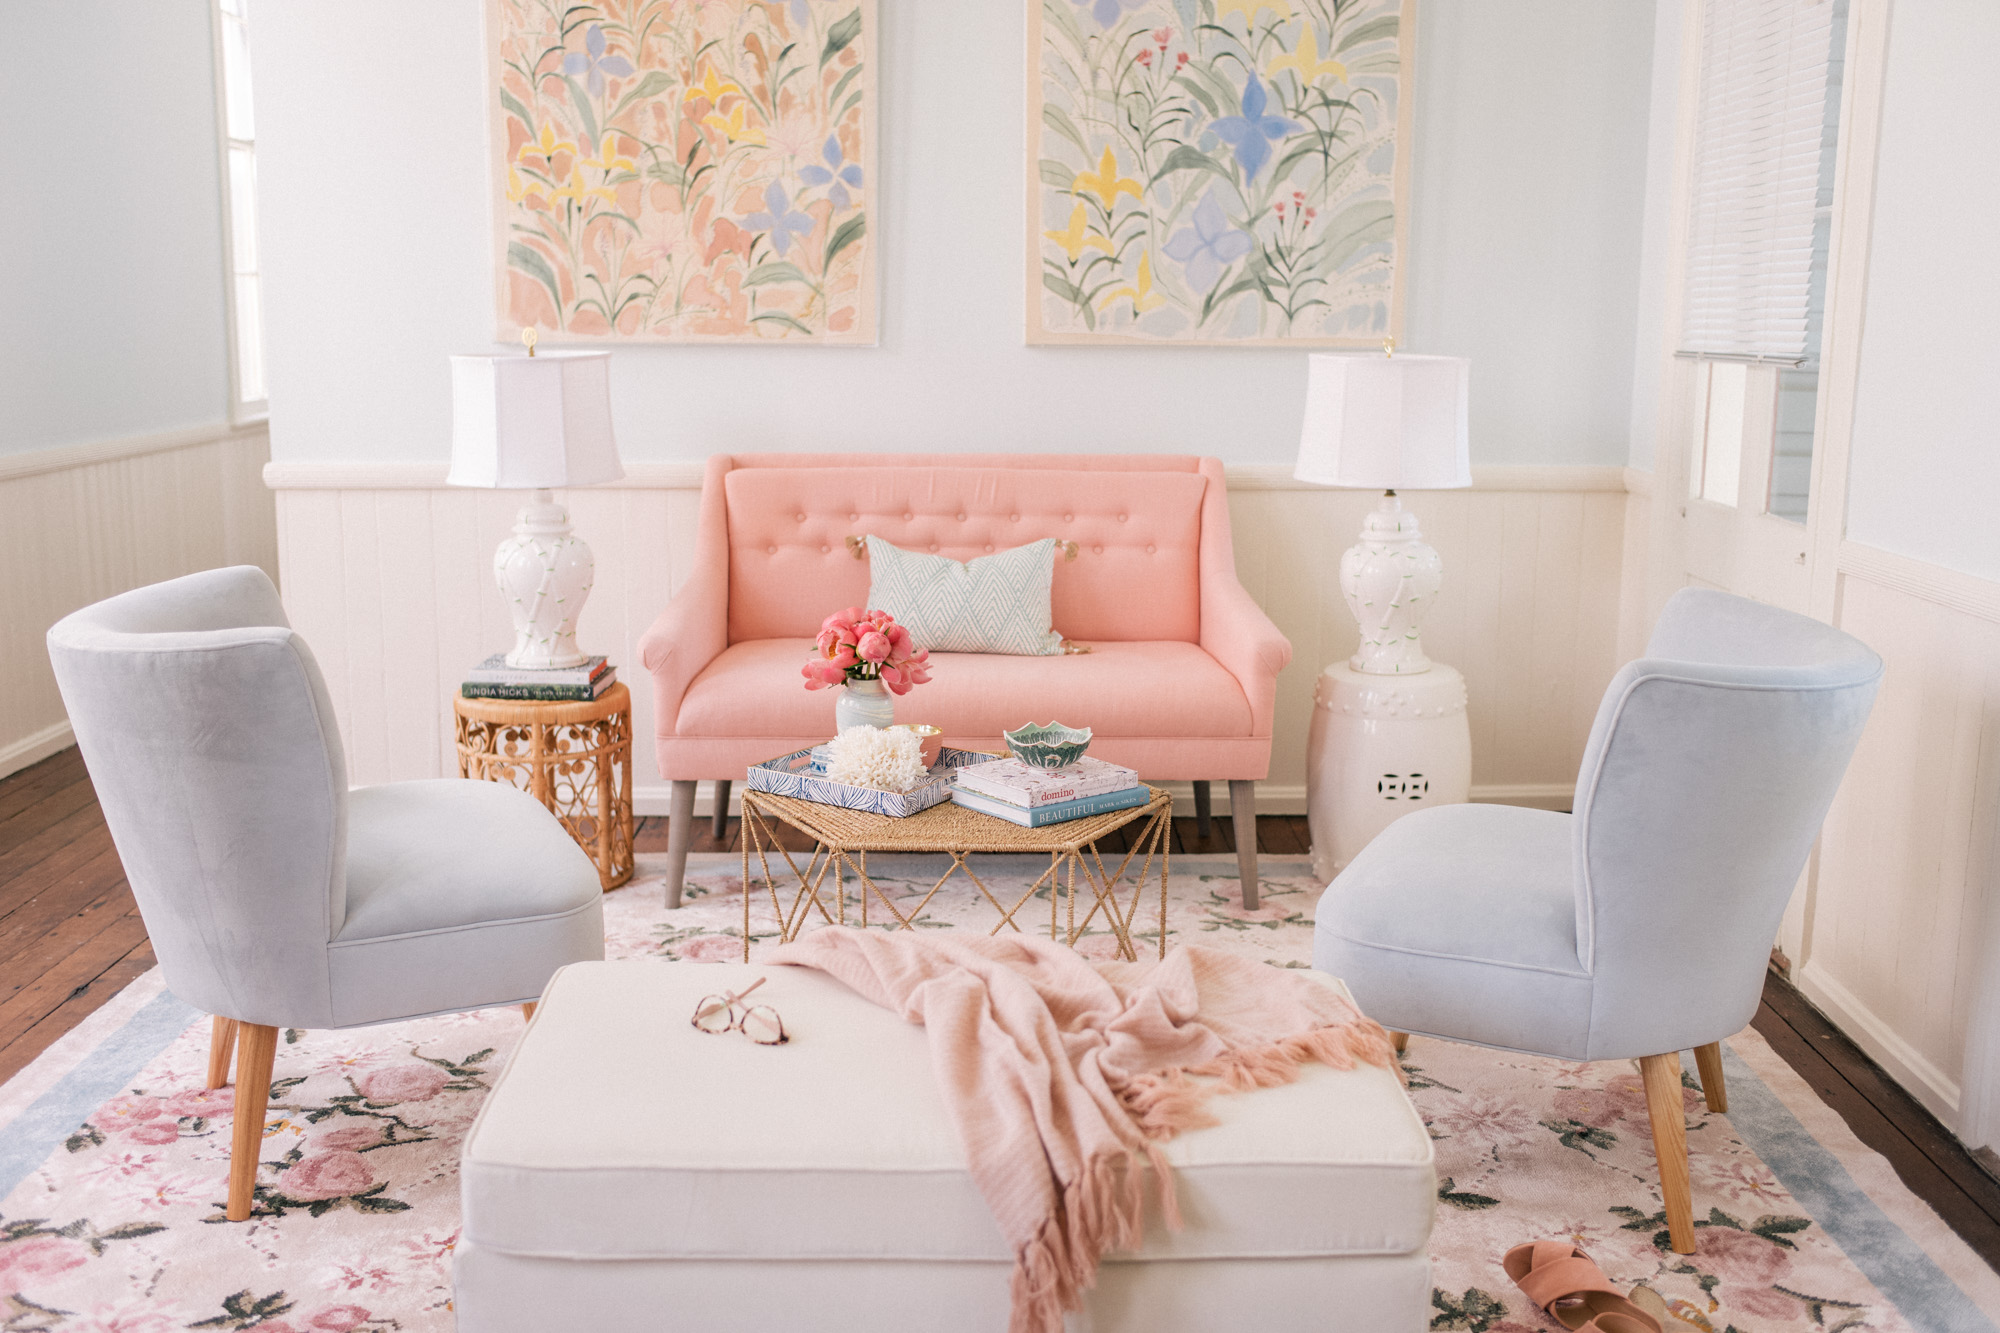 c6f3487846eb The Gal Meets Glam  Garden Party  rug I designed with Lulu   Georgia is now  available to purchase! I gave a few sneak peeks over the past few months  showing ...